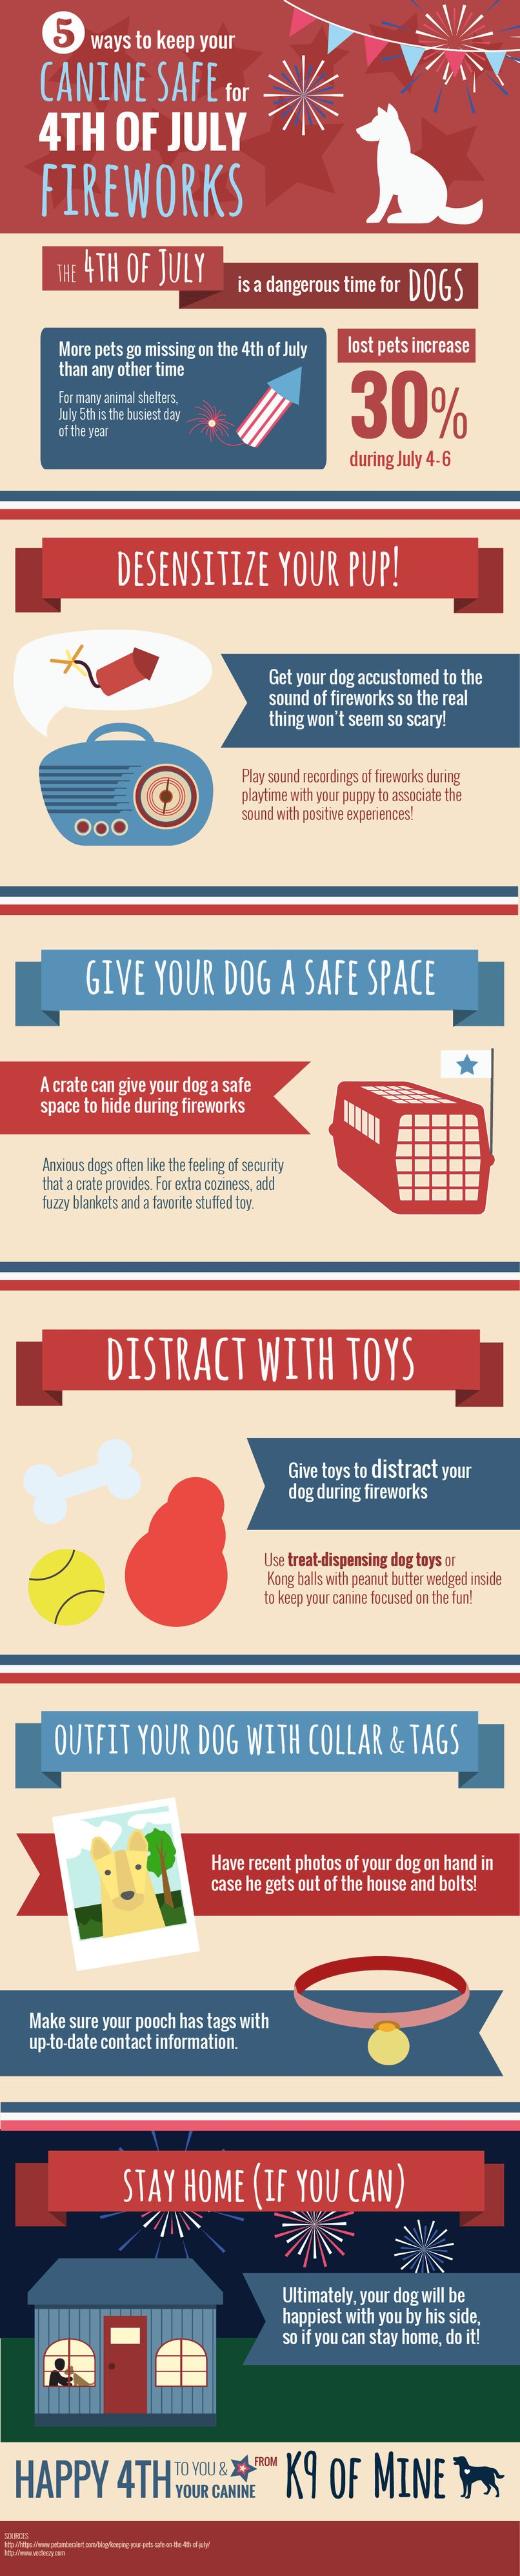 How to keep your dog safe for 4th of july fireworks [infographic]